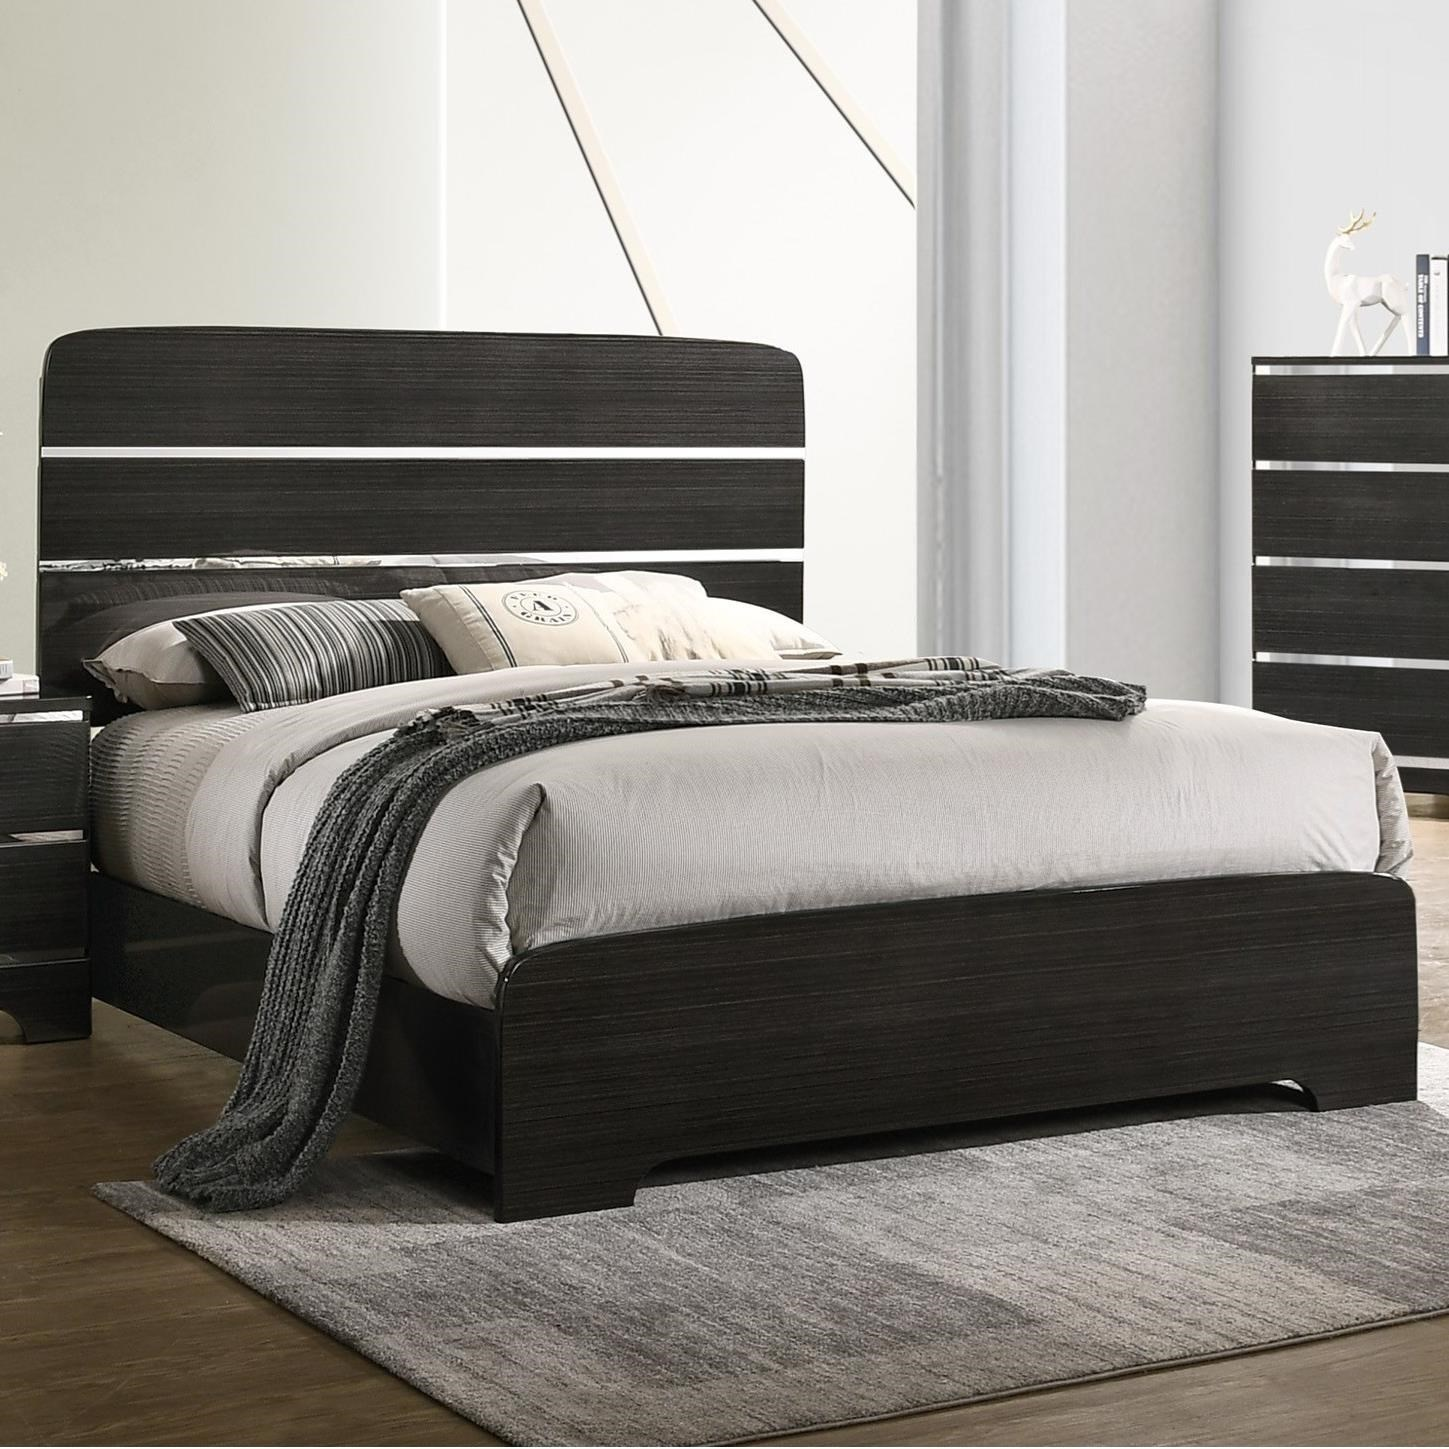 Chantal Contemporary Queen Bed With Silver Accents By Crown Mark At Dunk Bright Furniture